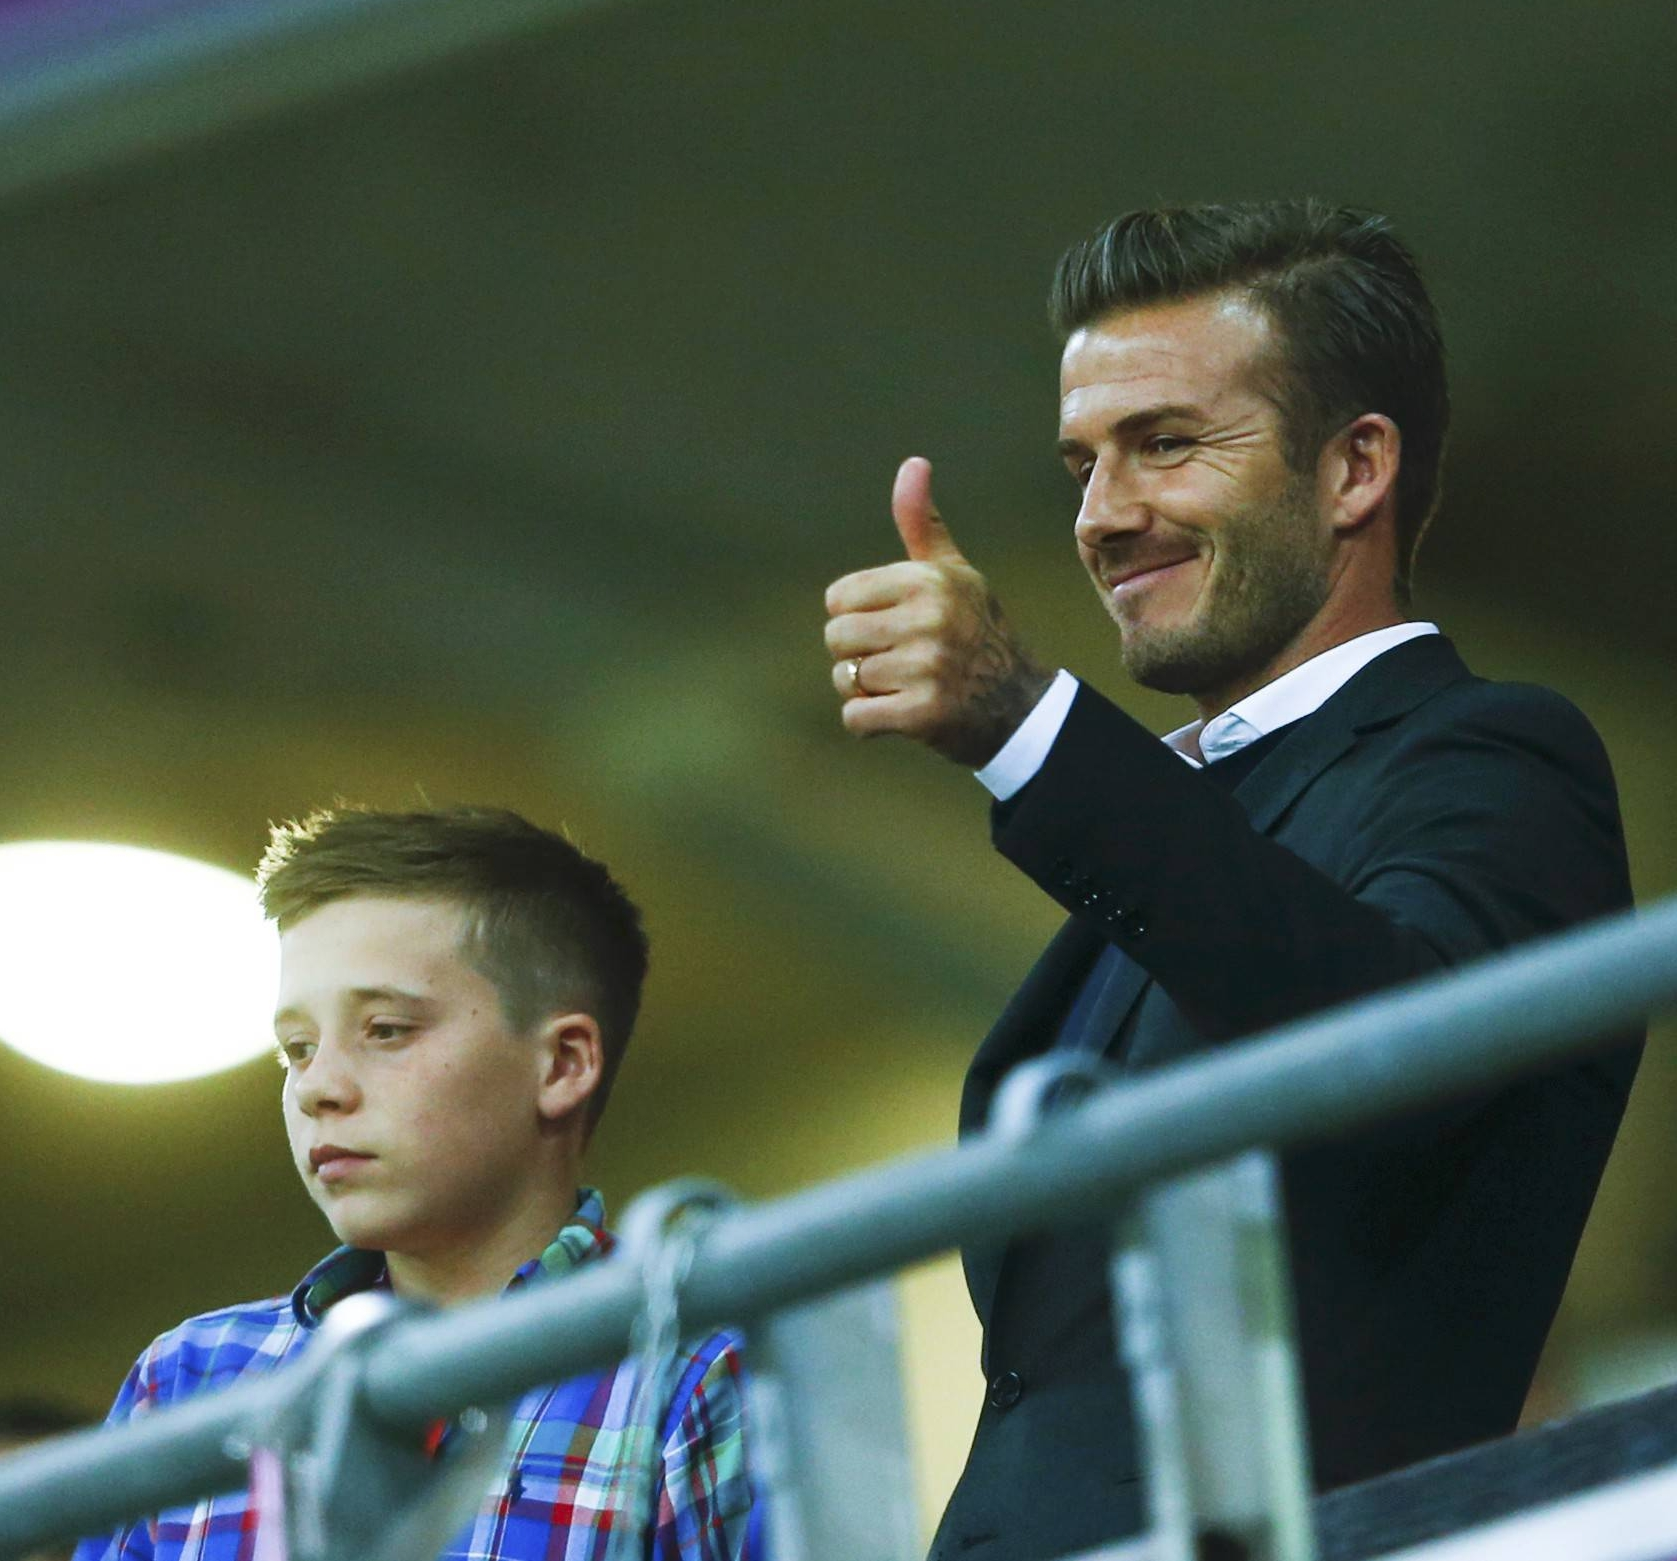 Soccer ace David Beckham (C) gives thumbs up as he stands with his son Brooklyn (L) and Britain's Prince William as they watch the men's preliminary first round Group A soccer match between Britain and UAE at the London 2012 Olympic Games in the Wembley Stadium in London July 29, 2012.               REUTERS/Eddie Keogh (BRITAIN  - Tags: ENTERTAINMENT OLYMPICS ROYALS SPORT SOCCER)